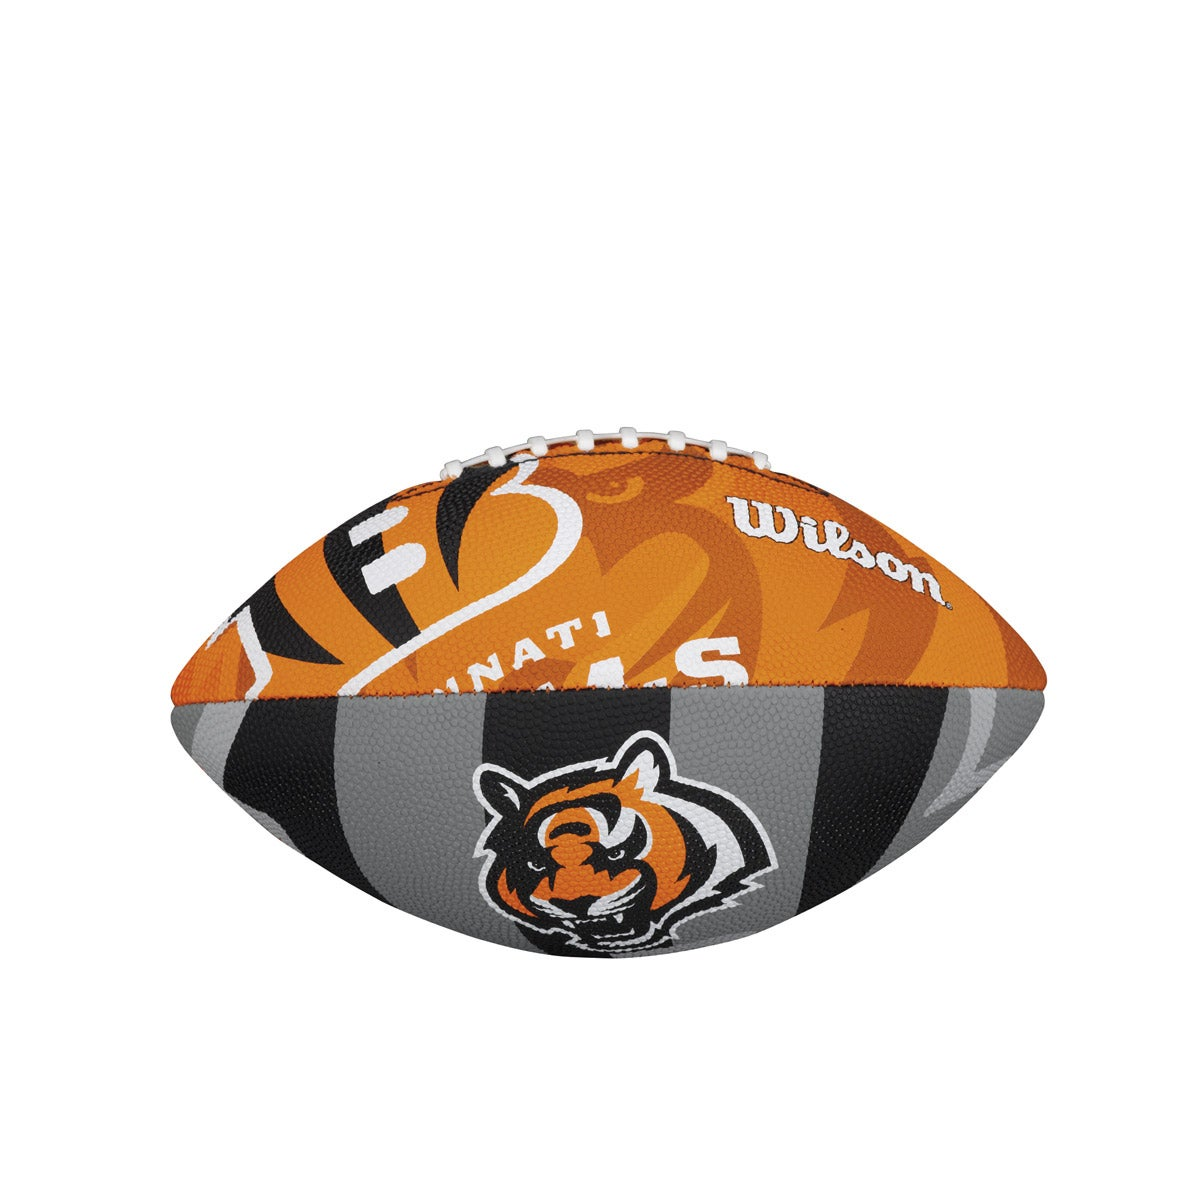 NFL TEAM LOGO JUNIOR SIZE FOOTBALL - CINCINNATI BENGALS